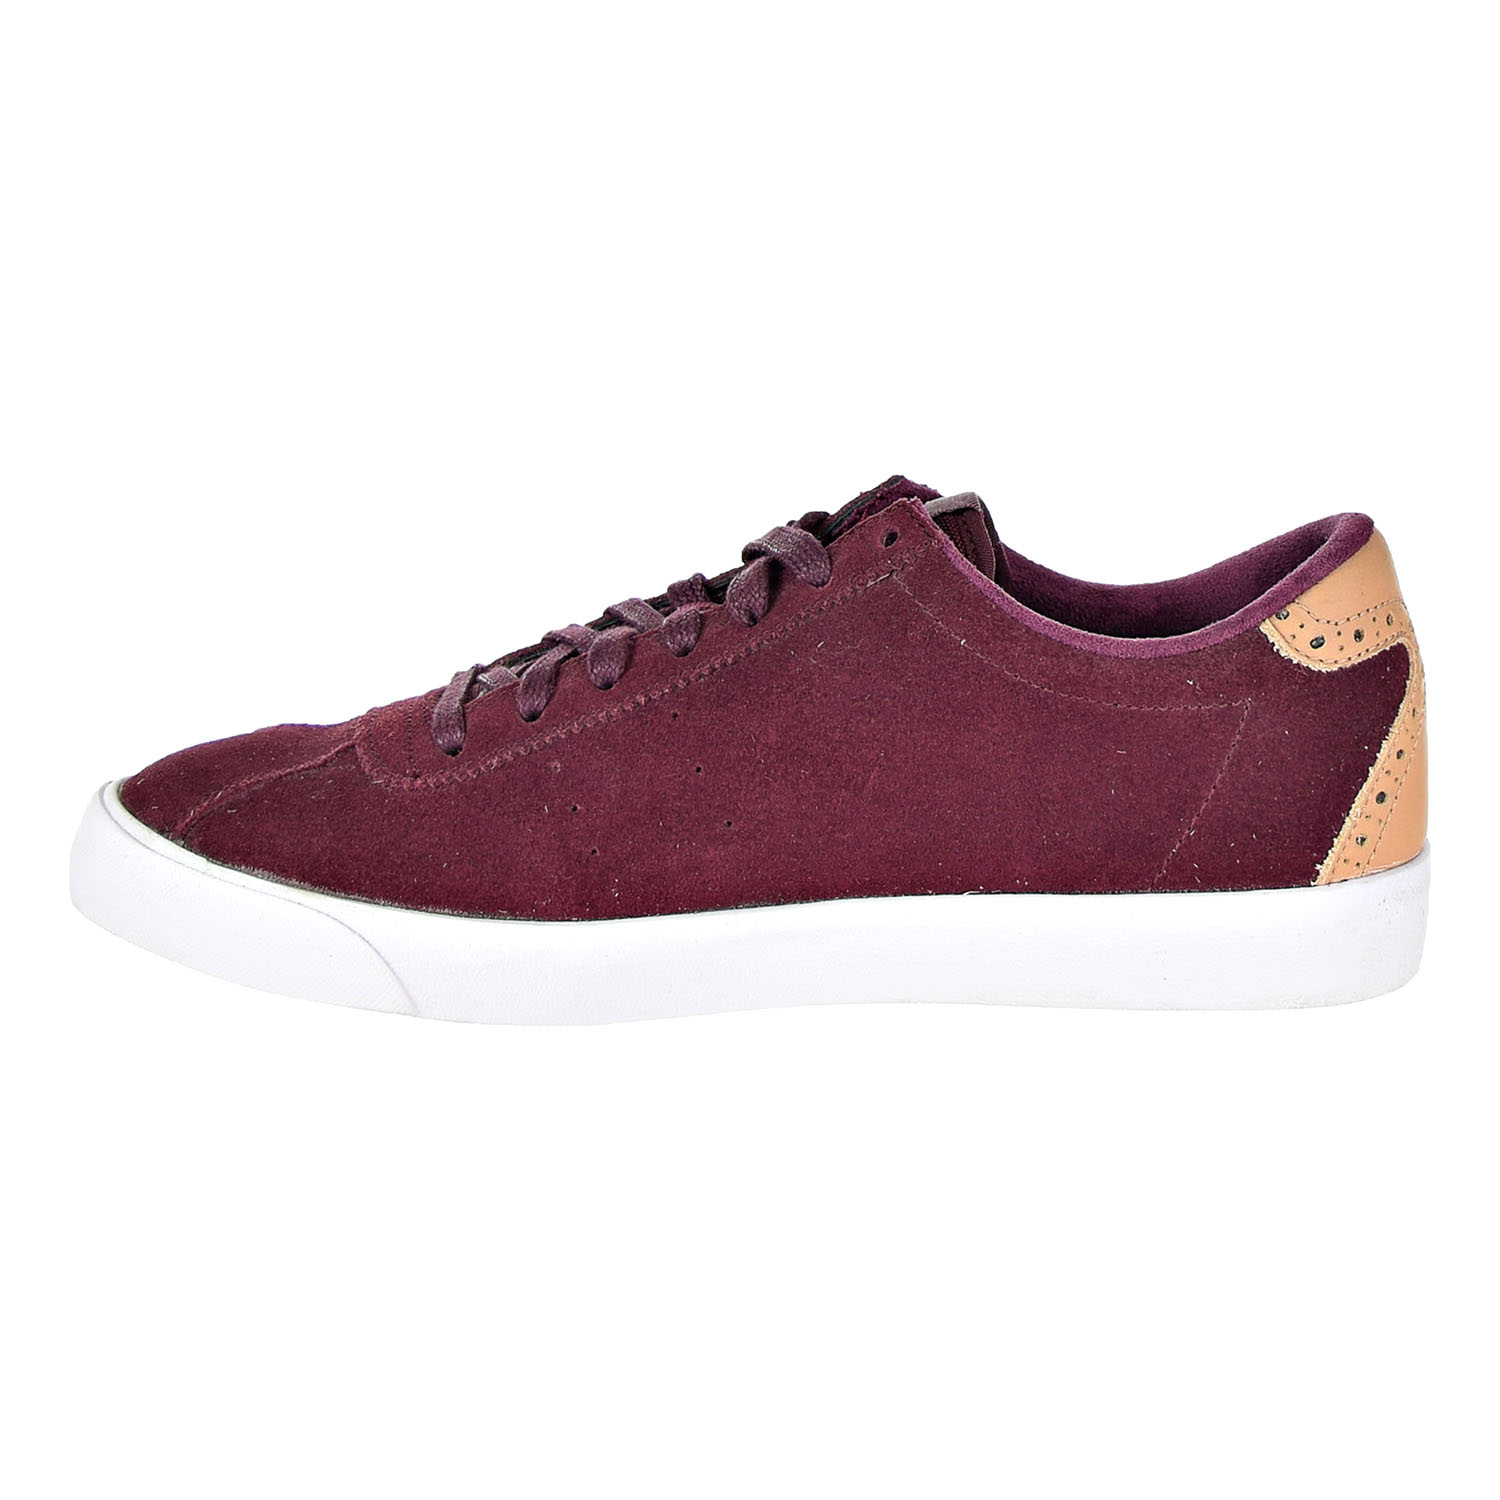 Mens Nike Match Classic Suede Night Maroon White Vachetta Tan 844611-6